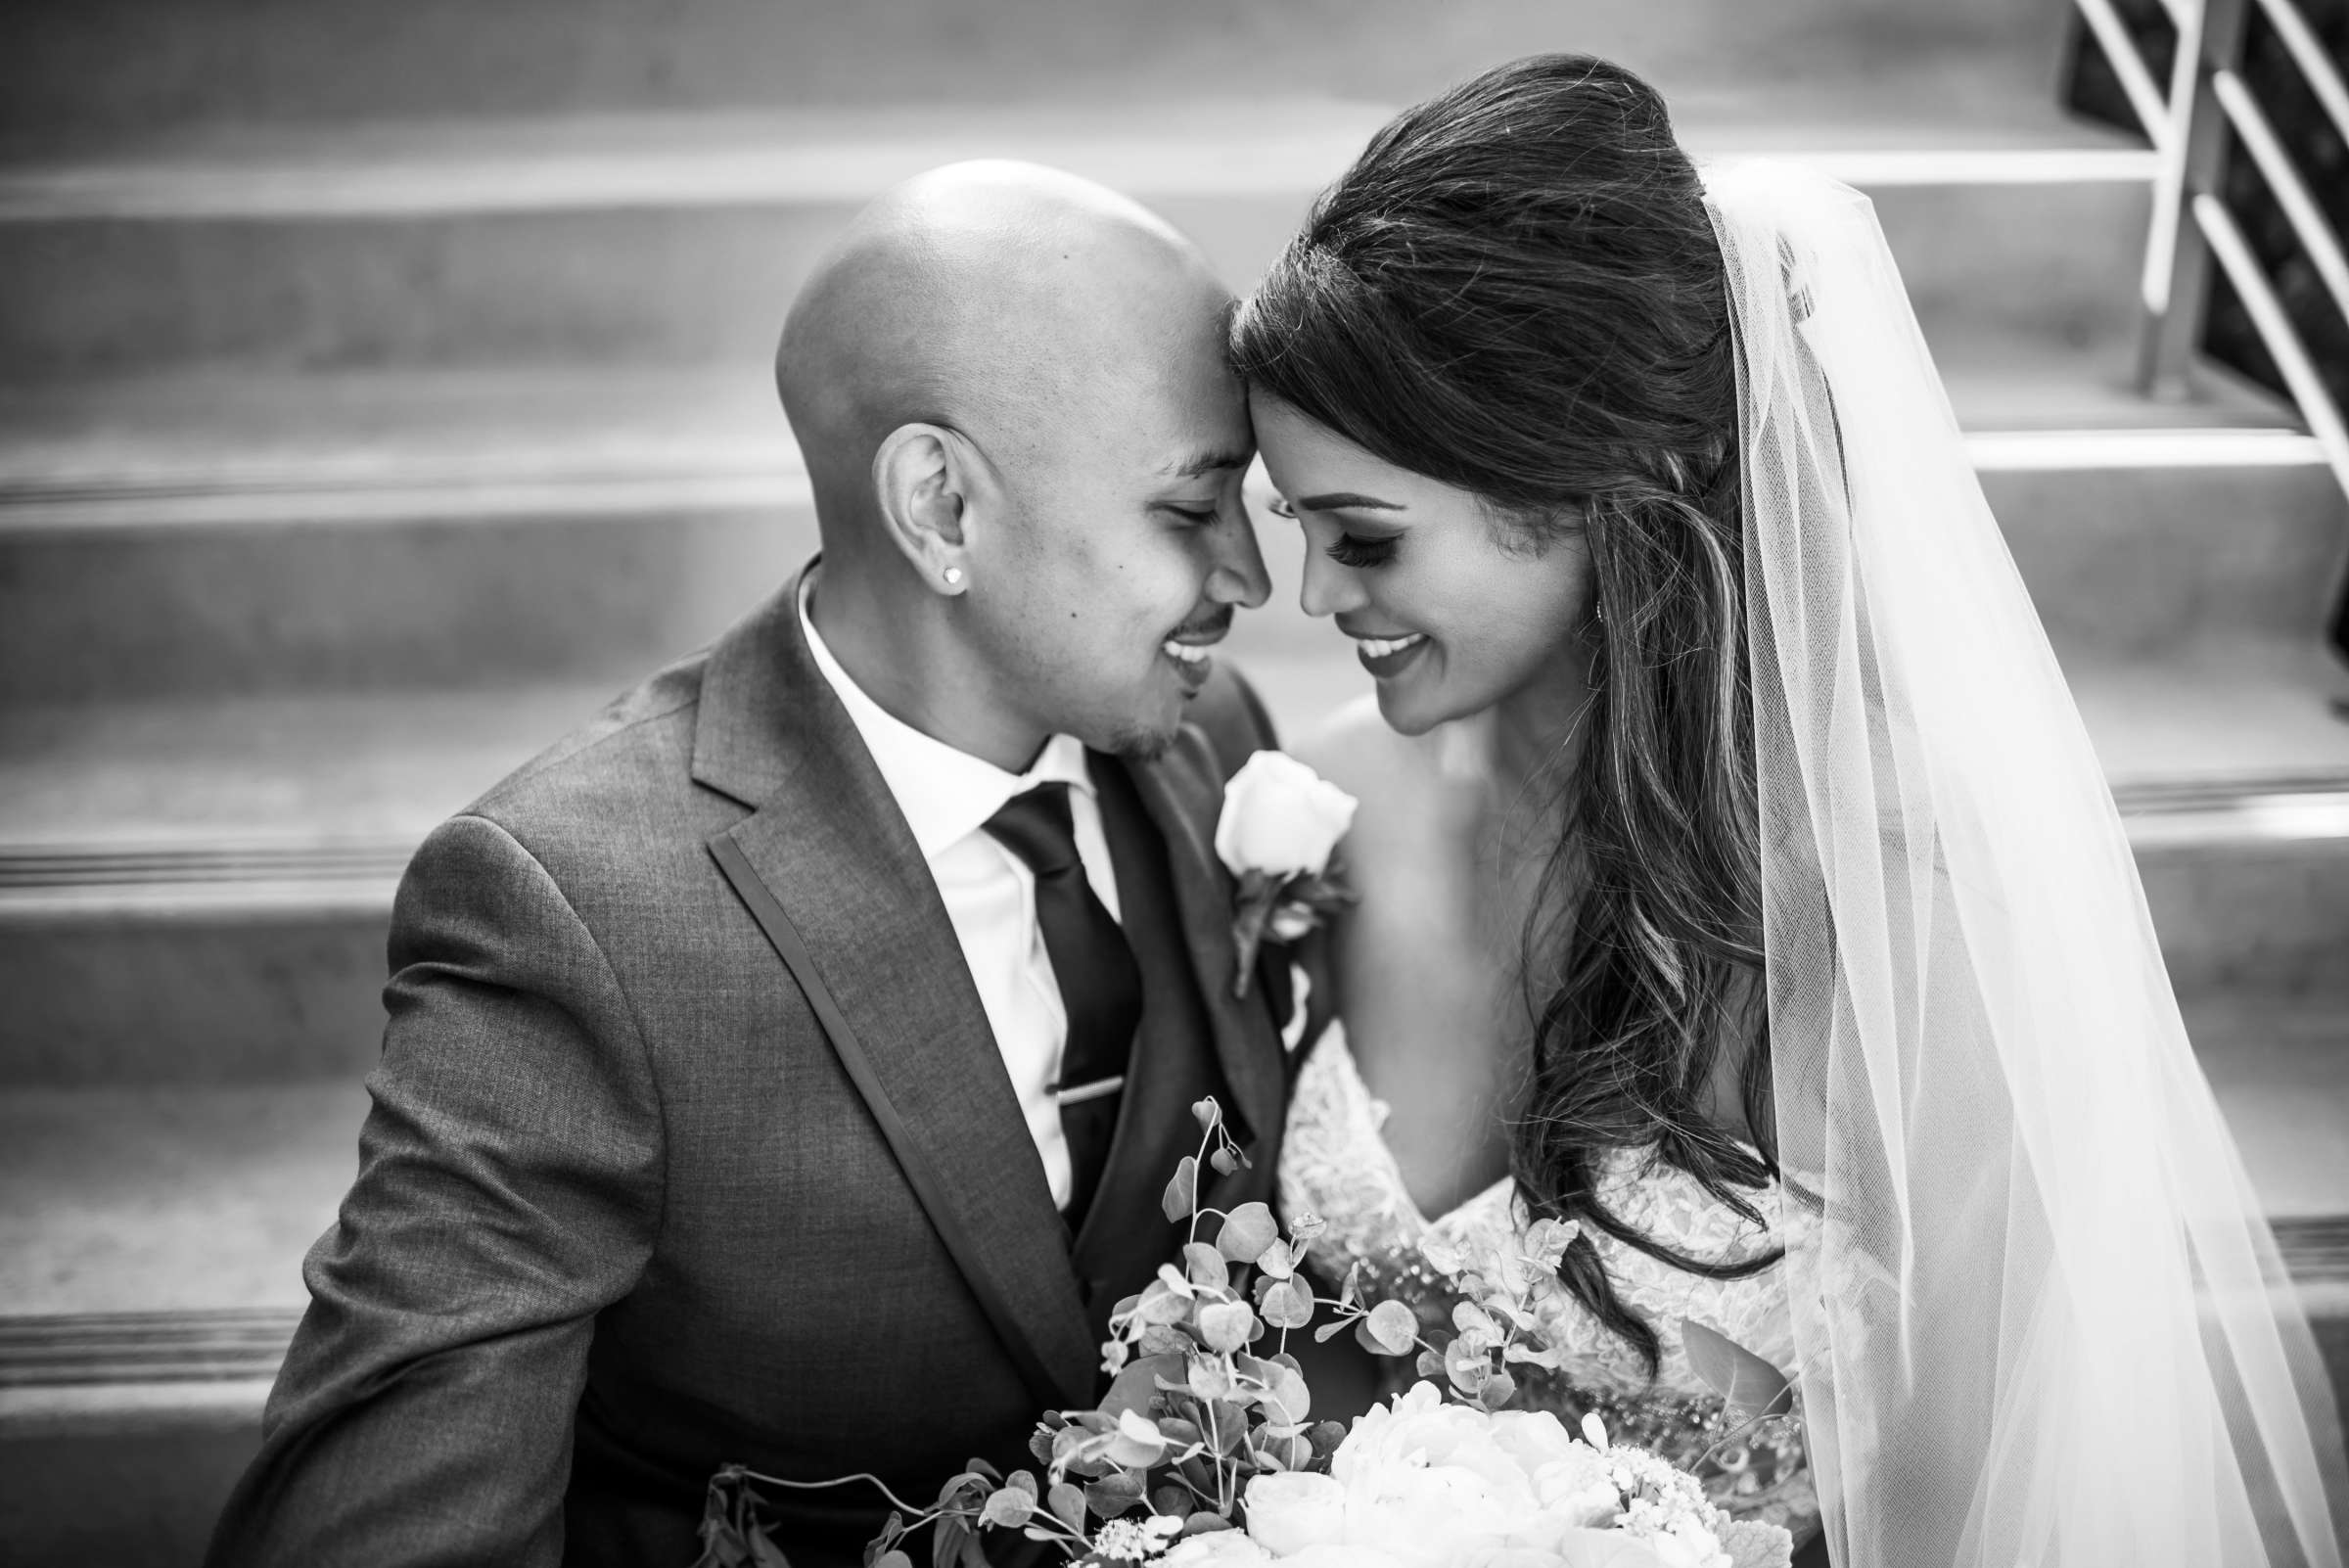 Scripps Seaside Forum Wedding coordinated by Lavish Weddings, Cindy and Justin Wedding Photo #381770 by True Photography